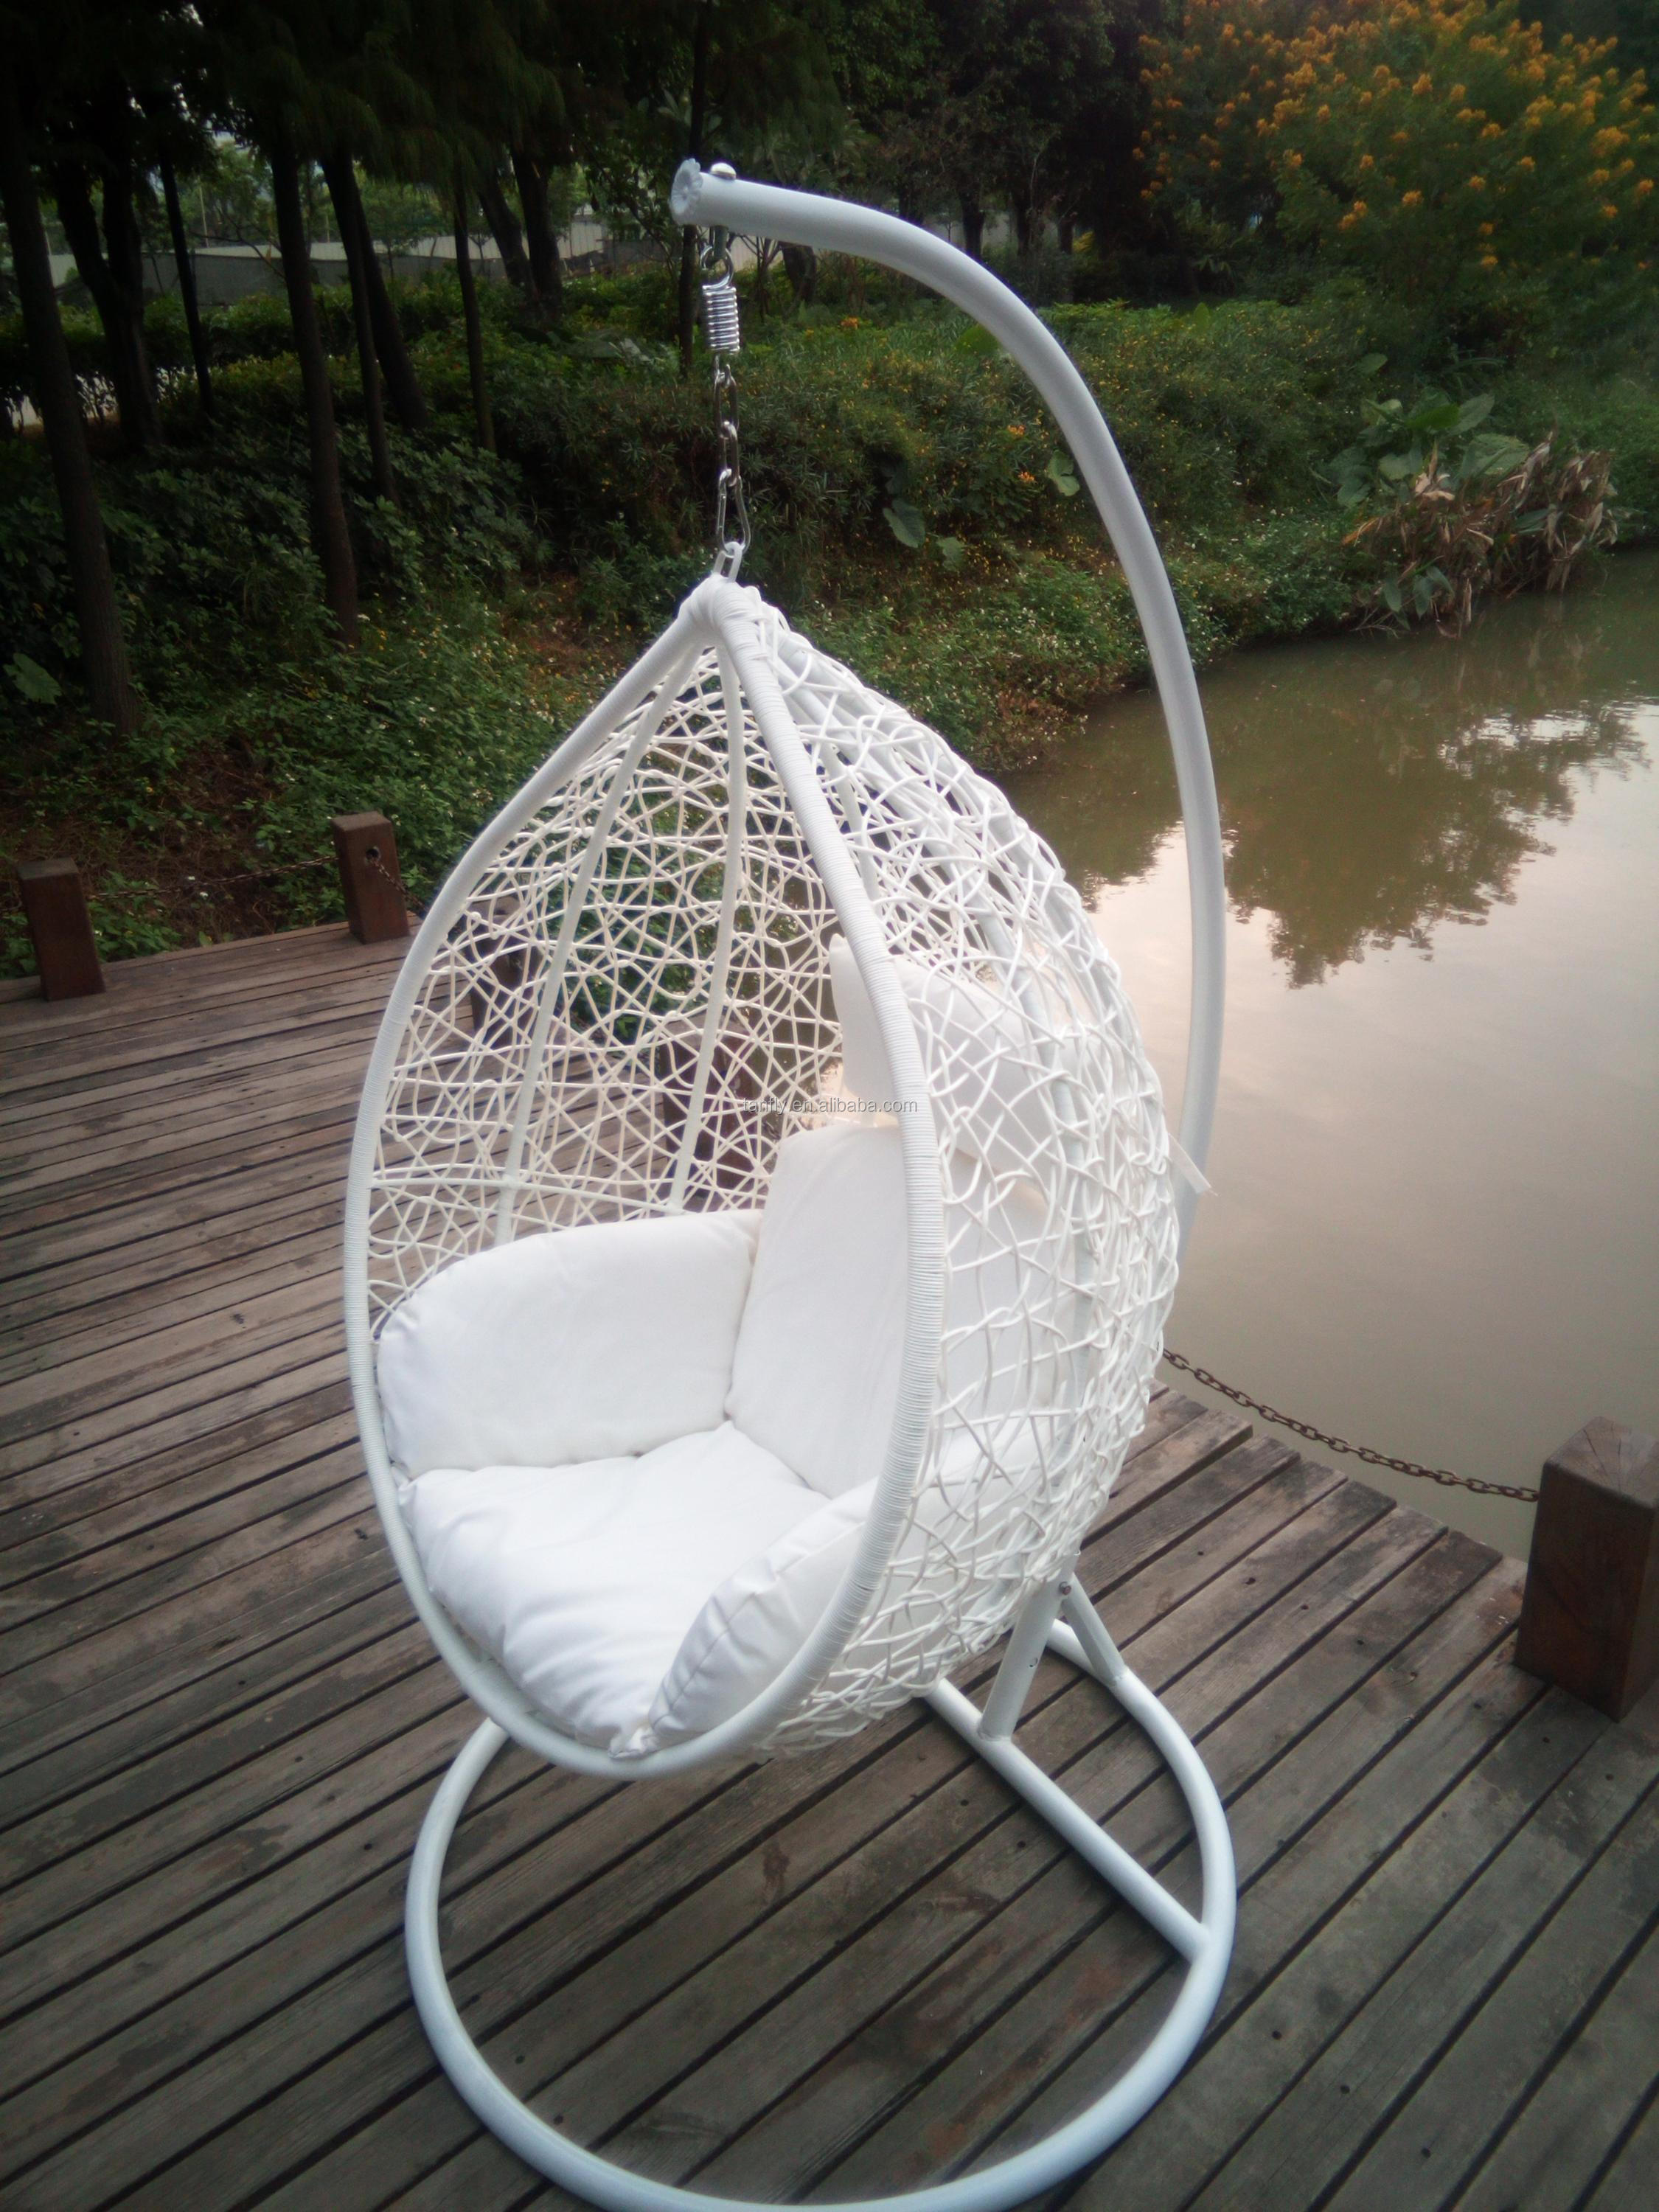 Wicker Egg Chairs For Sale Bedroom Outdoor Hanging Wicker Egg Chair Hammocks For Sale Buy Hammock Outdoor Outdoor Swing Chair Hammocks Wicker Egg Product On Alibaba